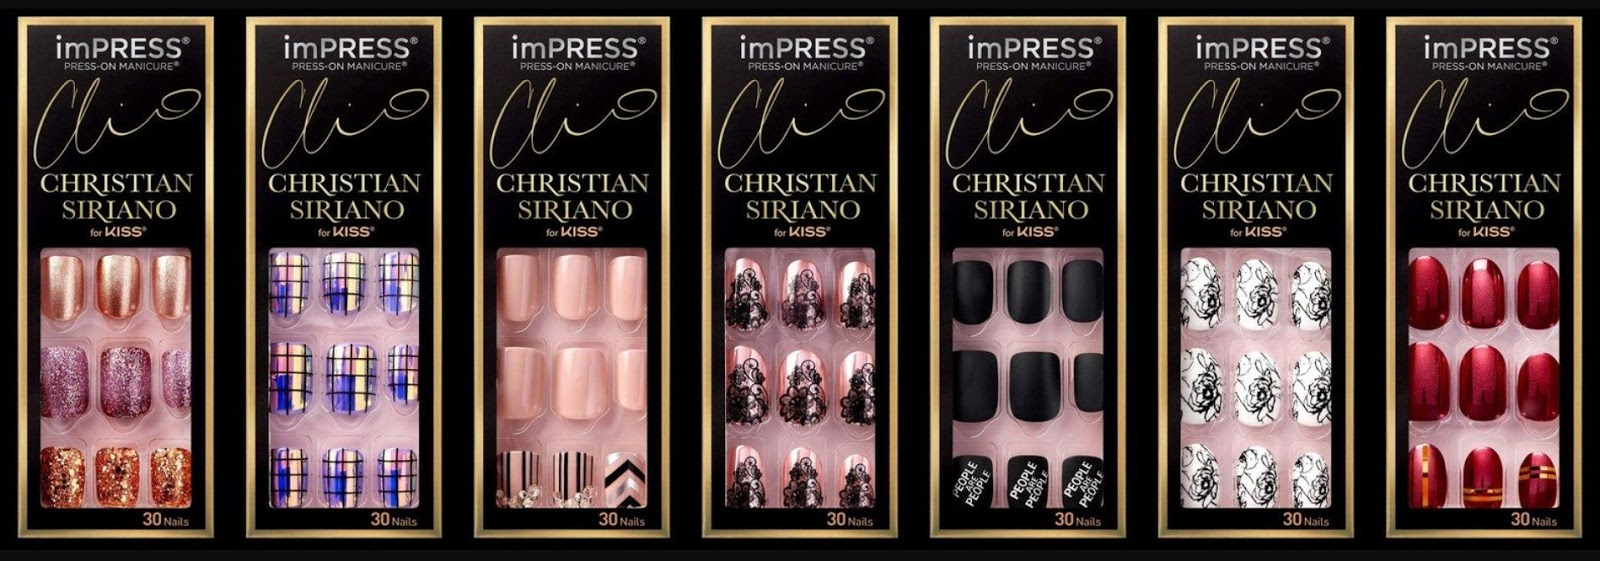 imPRESS Christian Siriano by Kiss Press-On Manicure Collection ...